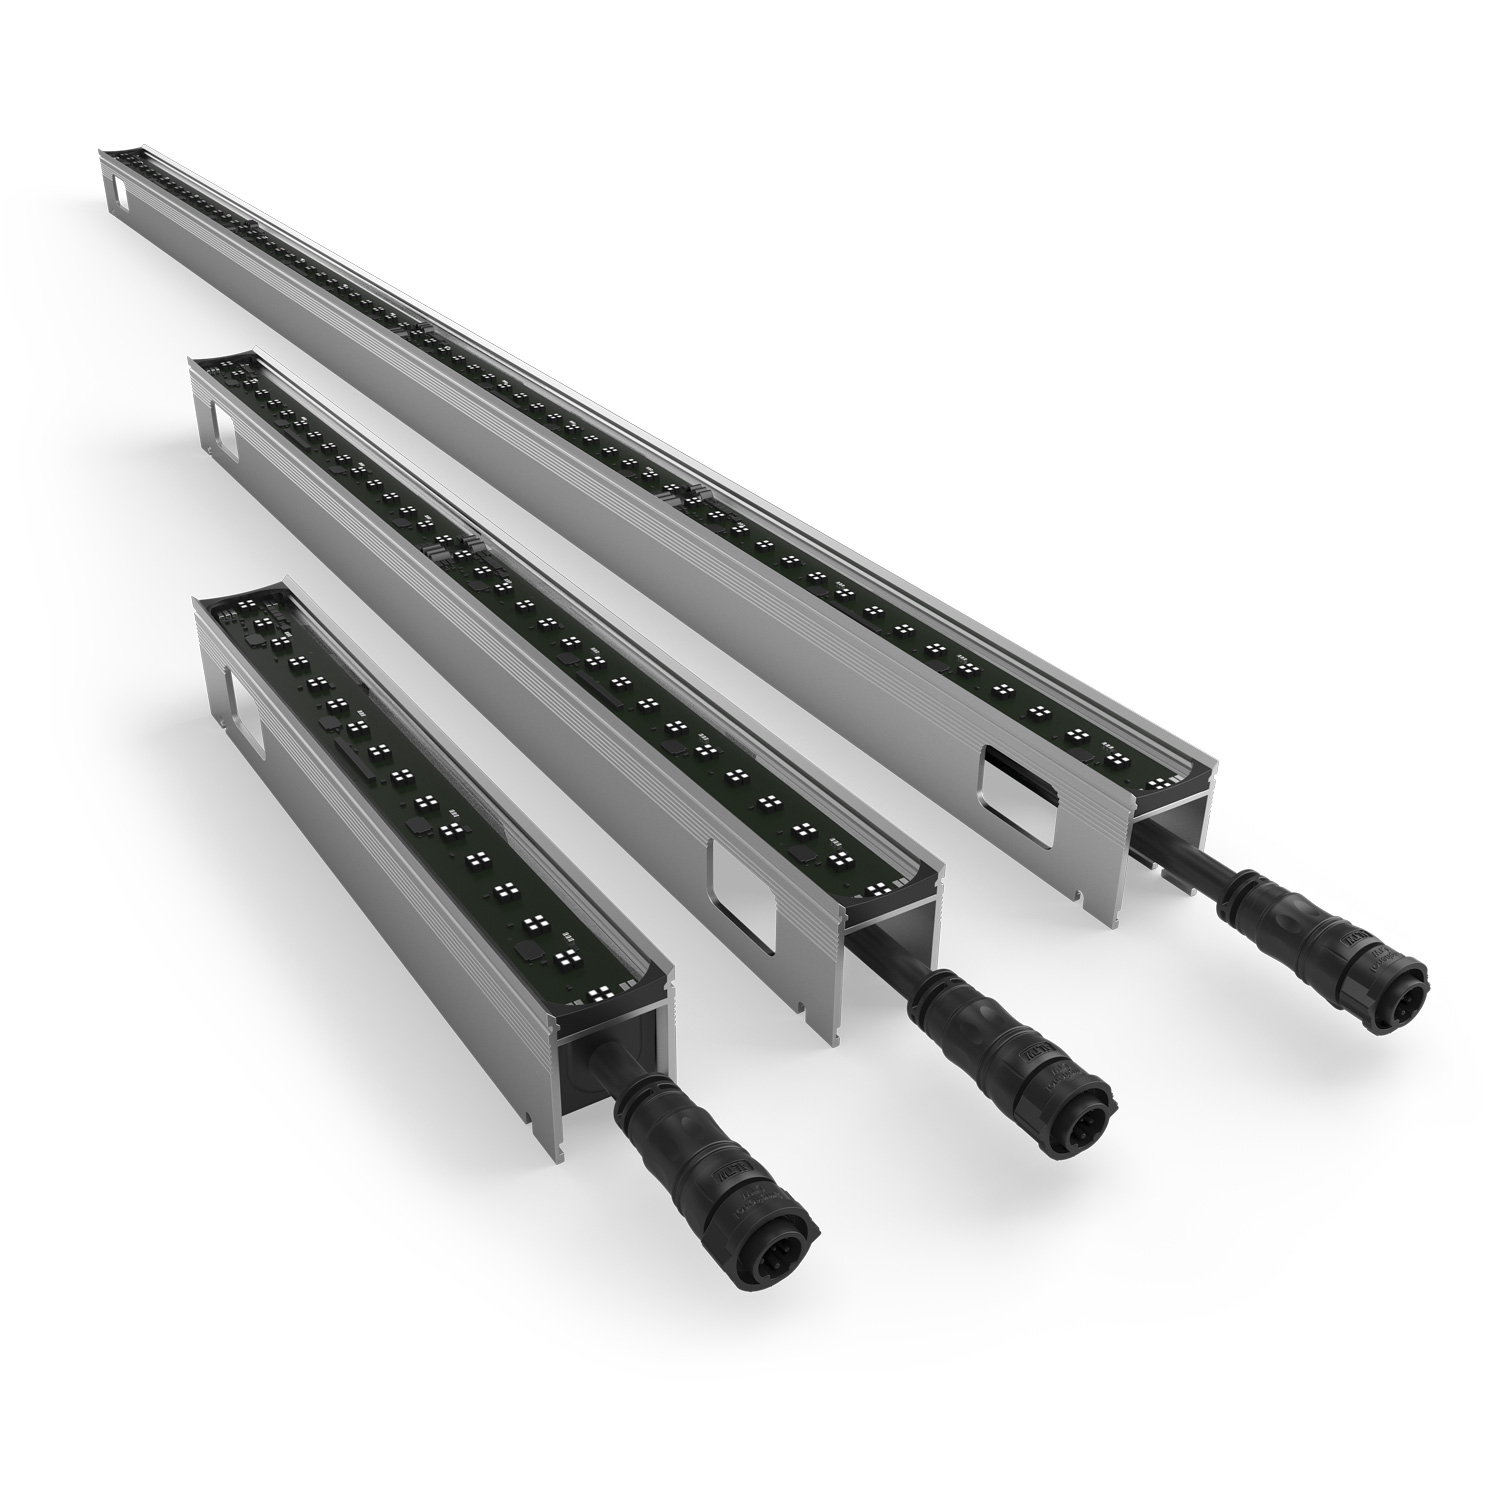 VPL 1220-20 by SGM Light | Powerful IP rated Video Pixel LinearSGM Light